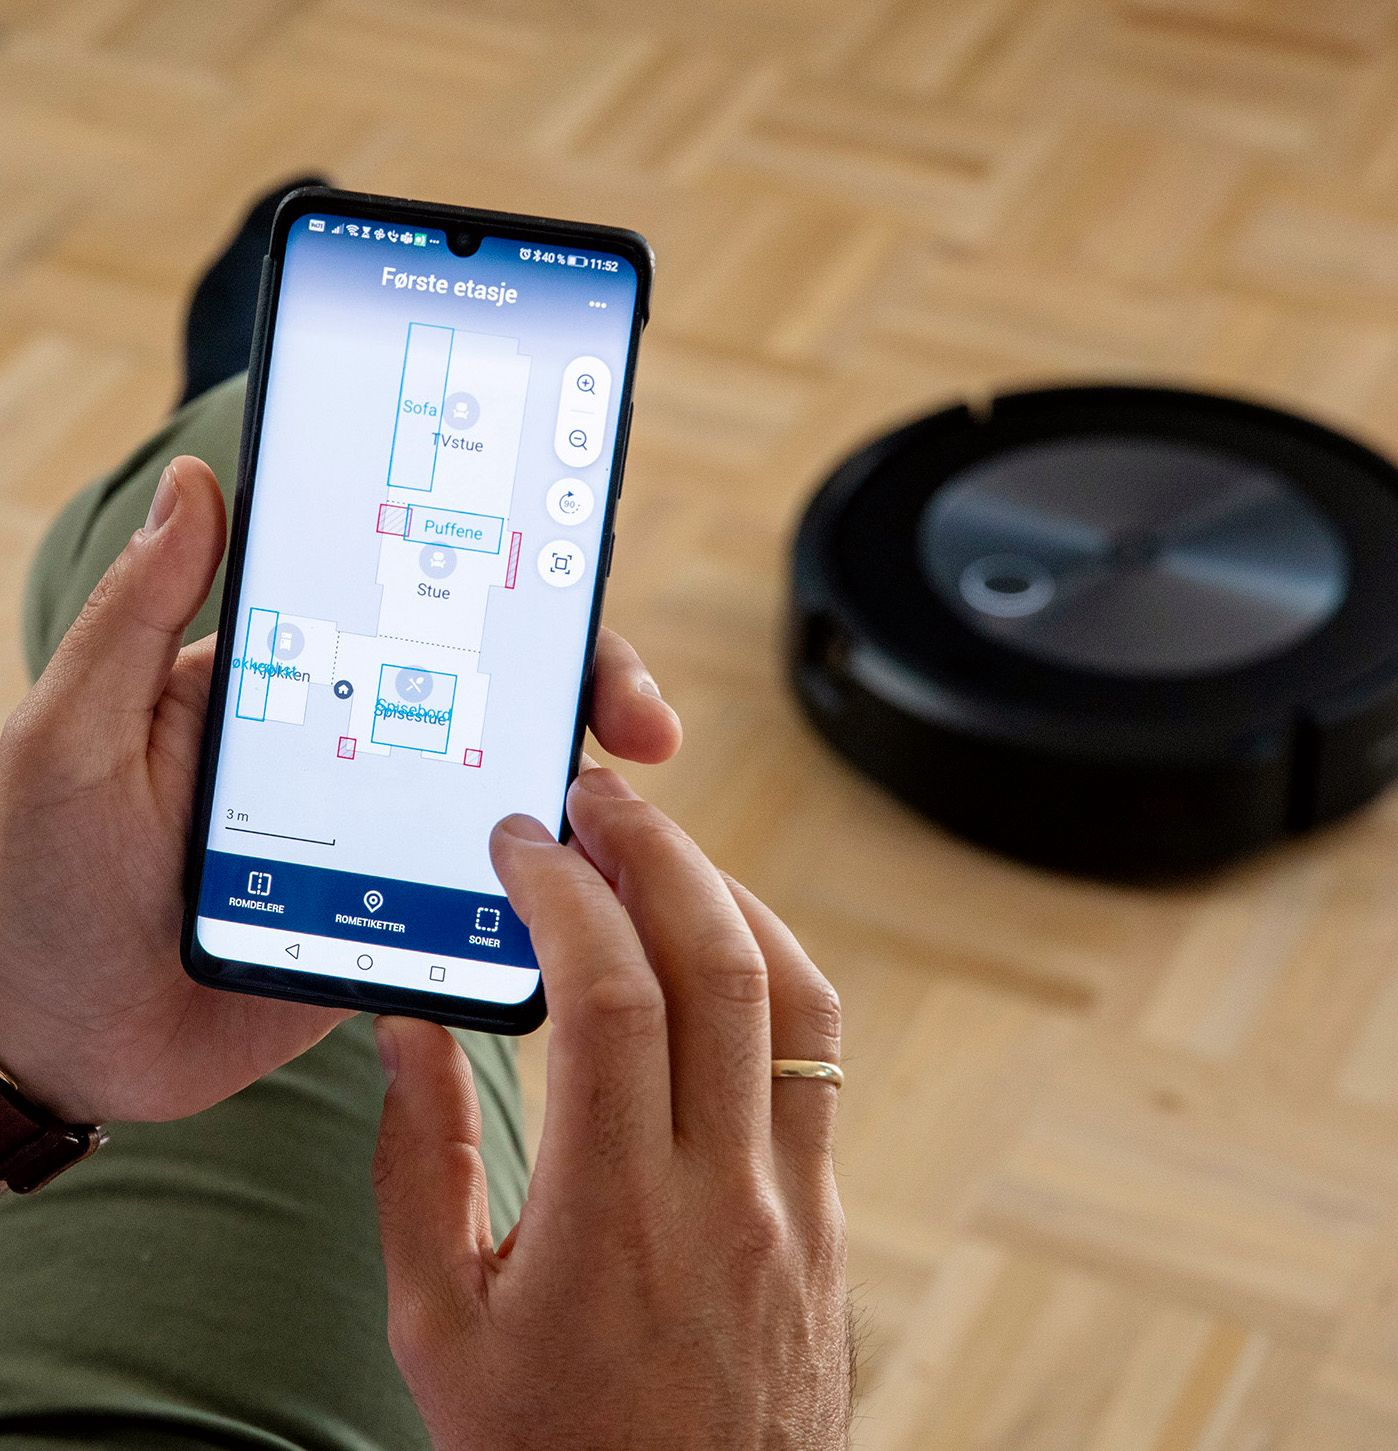 PRACTICAL: You can control the Roomba j7 + through a Norwegian language app on your mobile device.